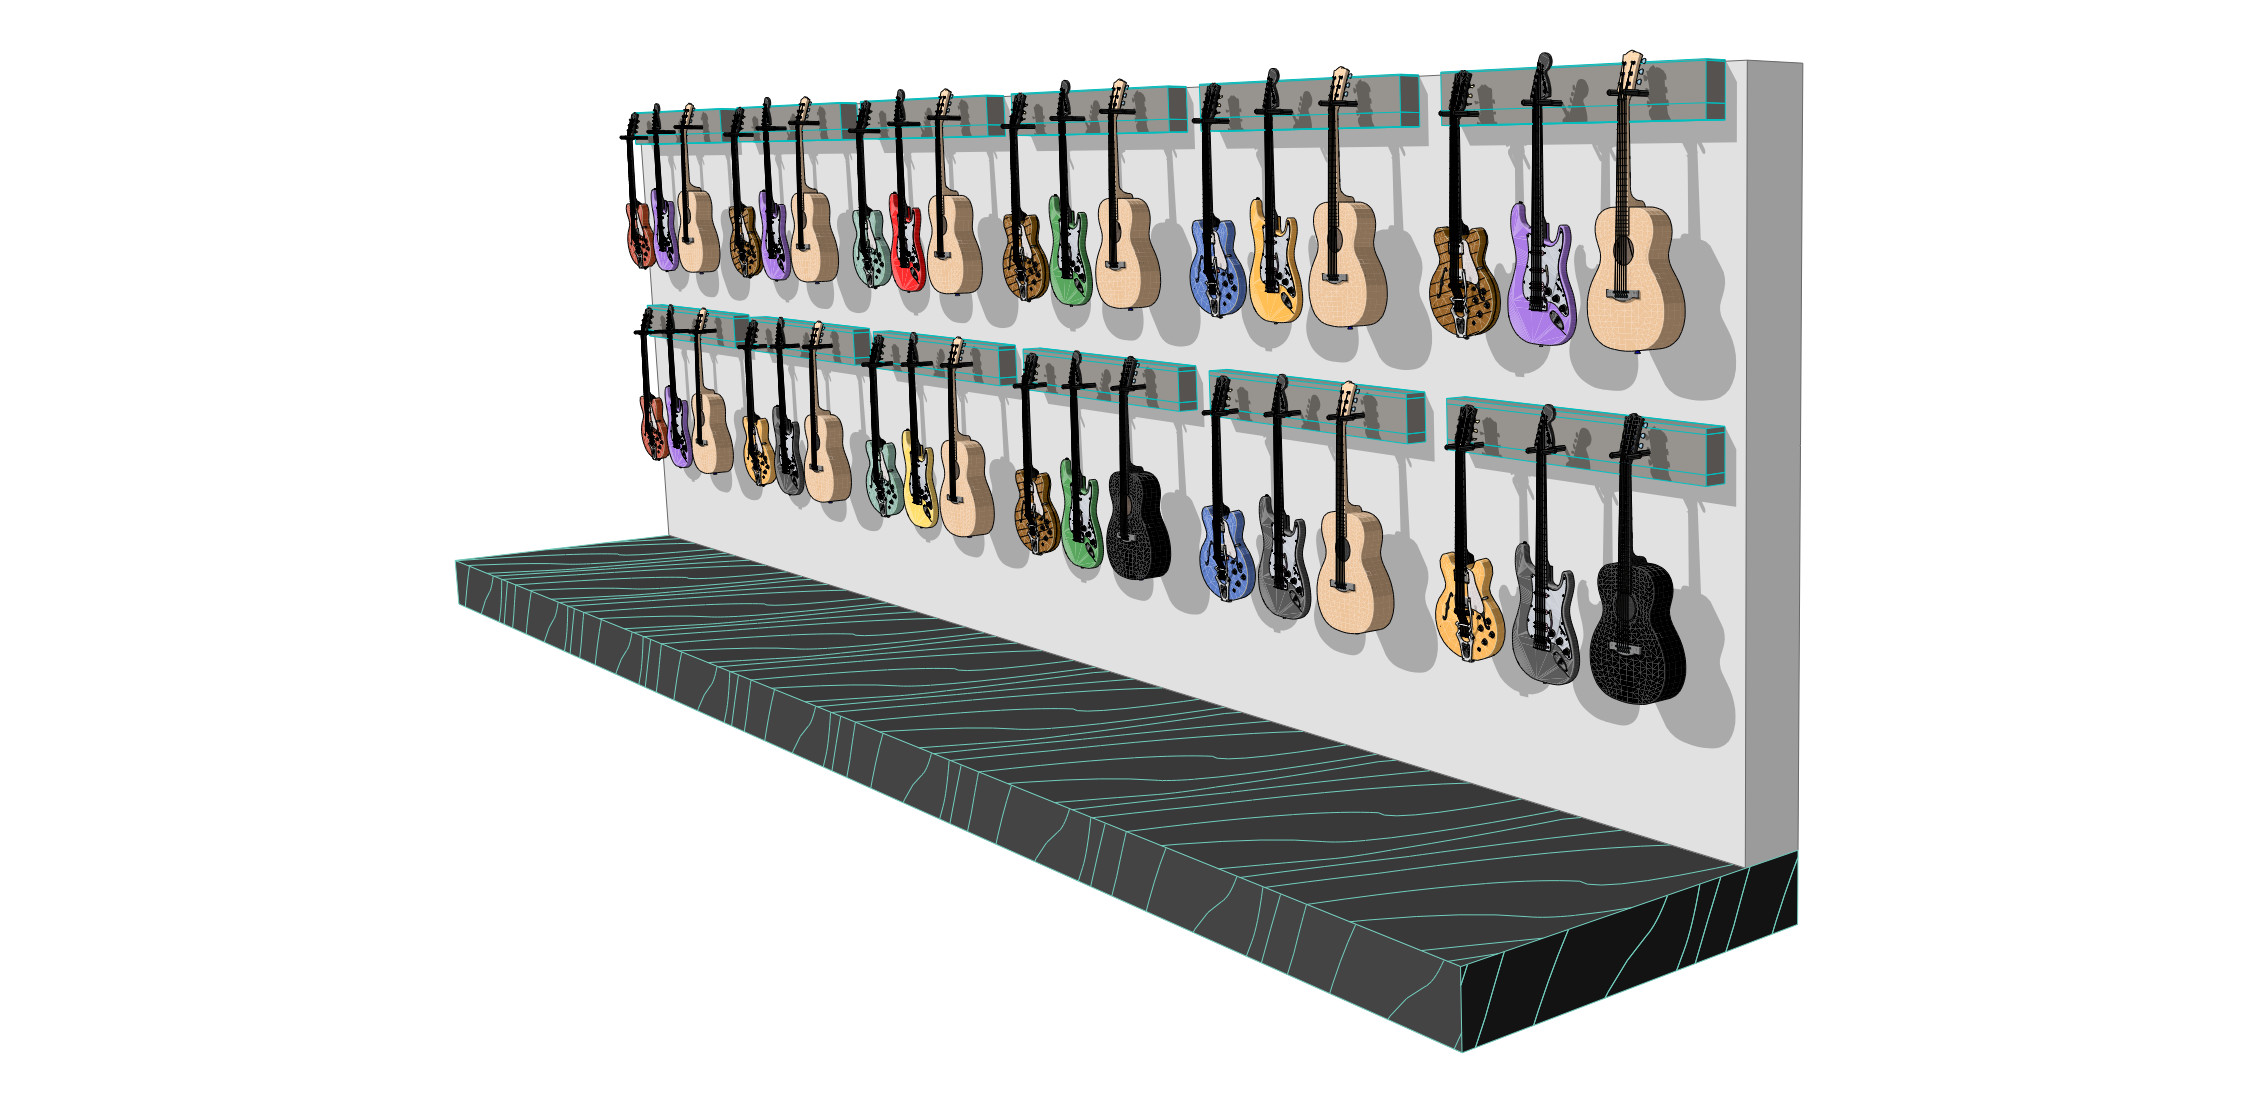 Here is a vectorial PDF exported perspective view of a wall of these converted guitars hung.